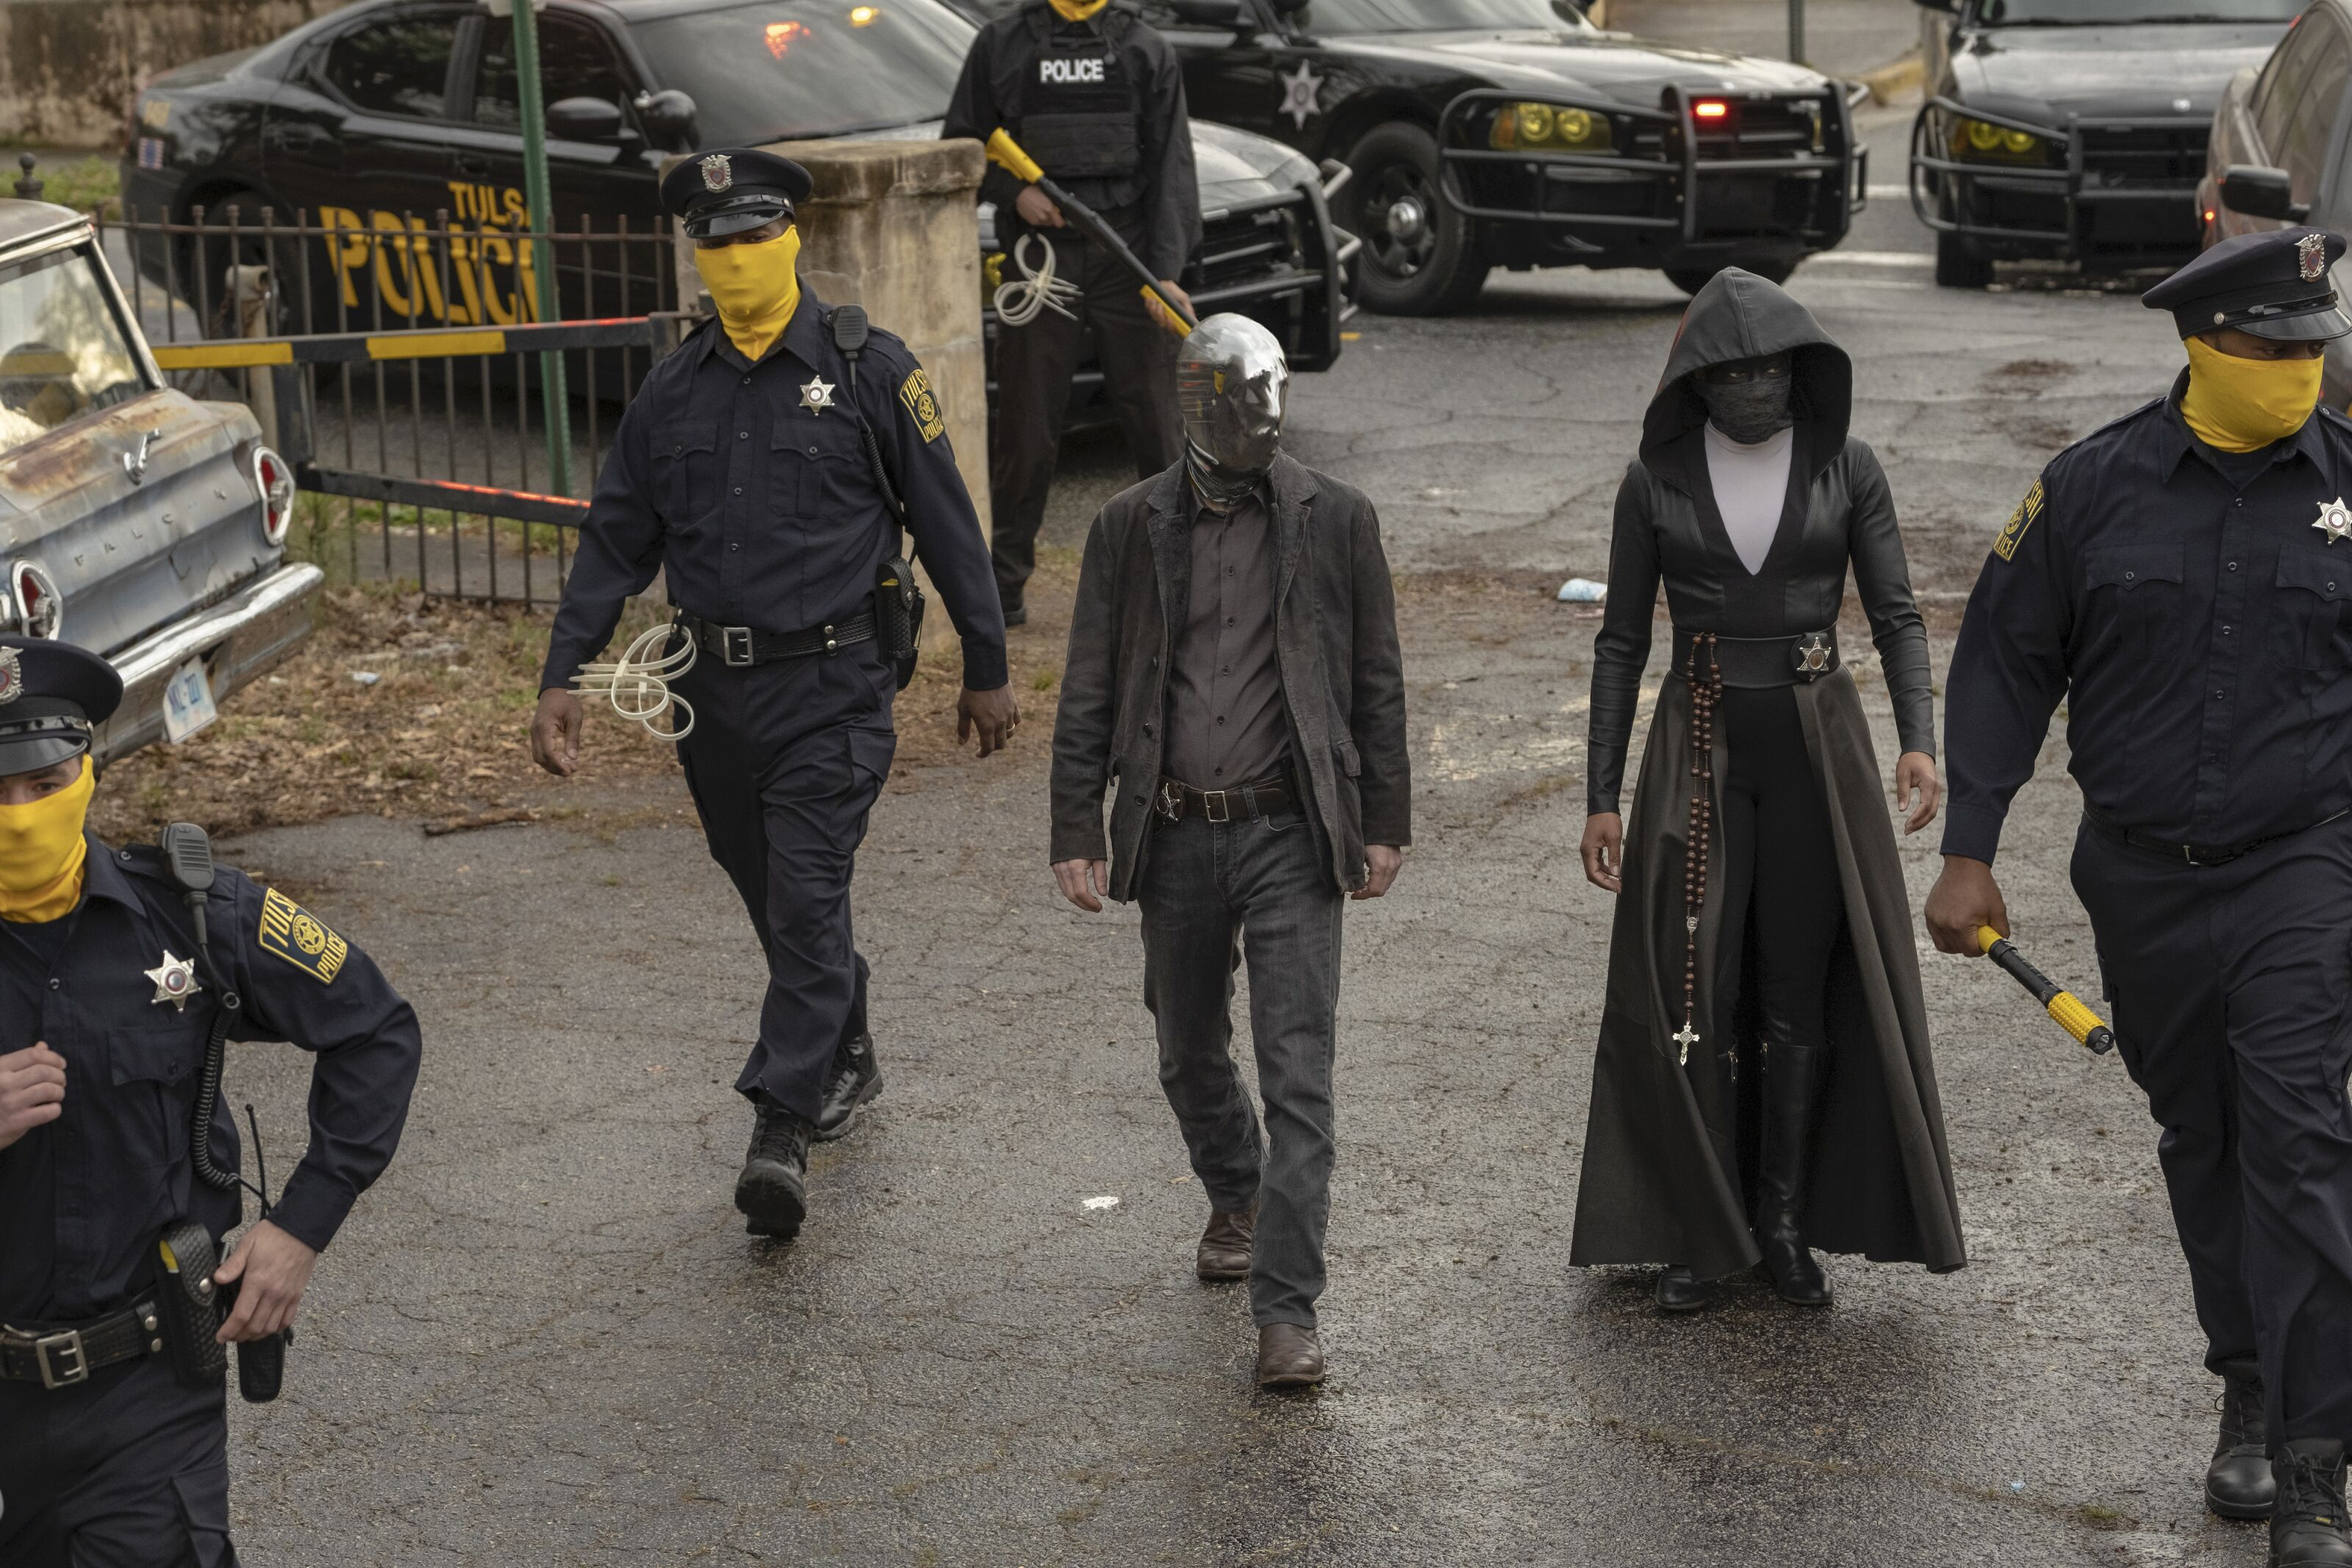 Watch the Watchmen series premiere live with Amazon Prime